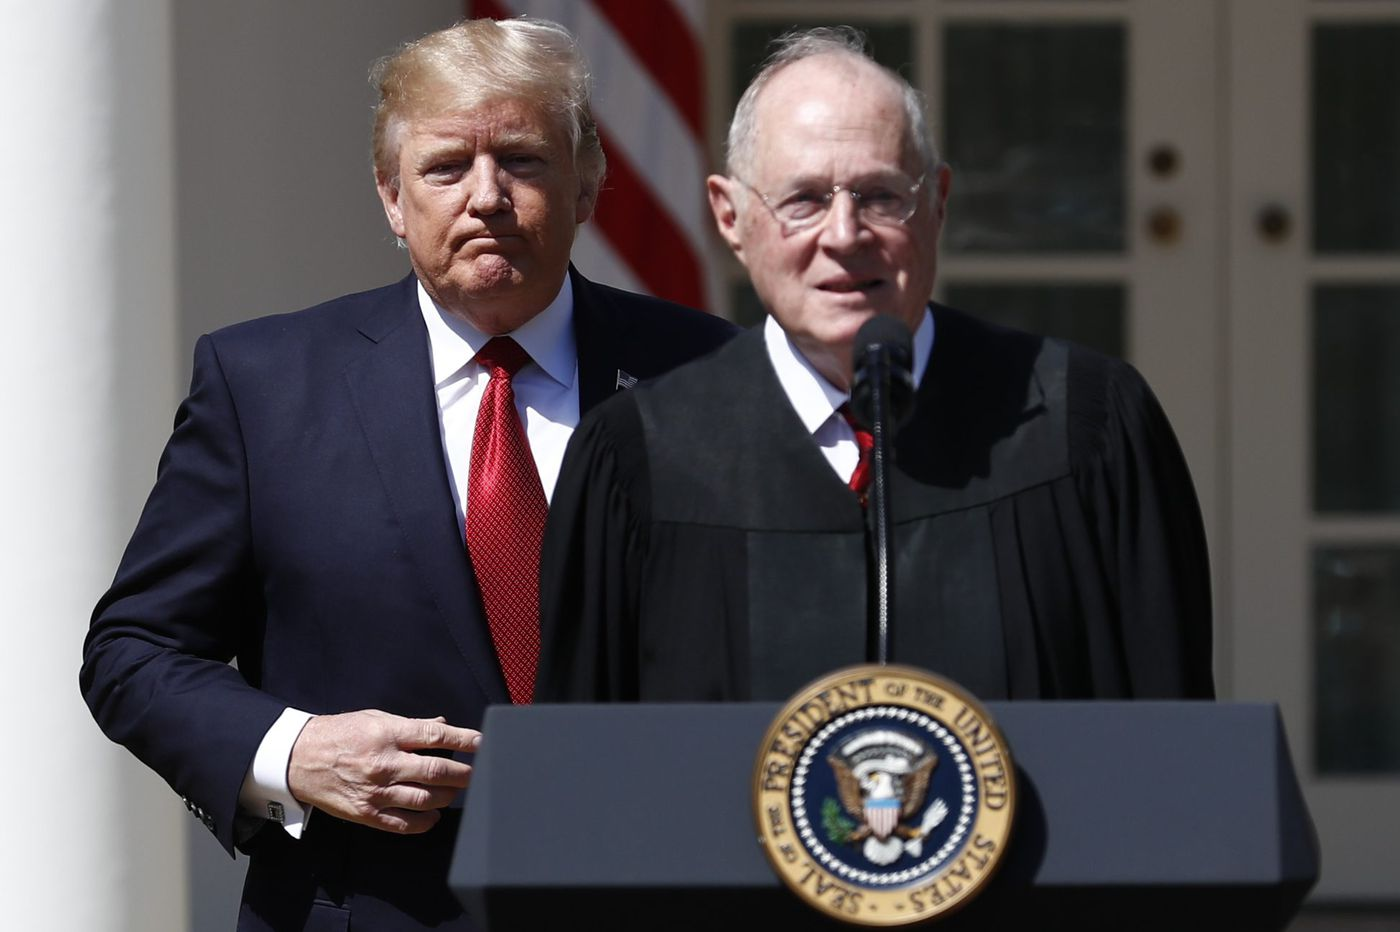 The frustrating timing of Anthony Kennedy's retirement | Michael Smerconish